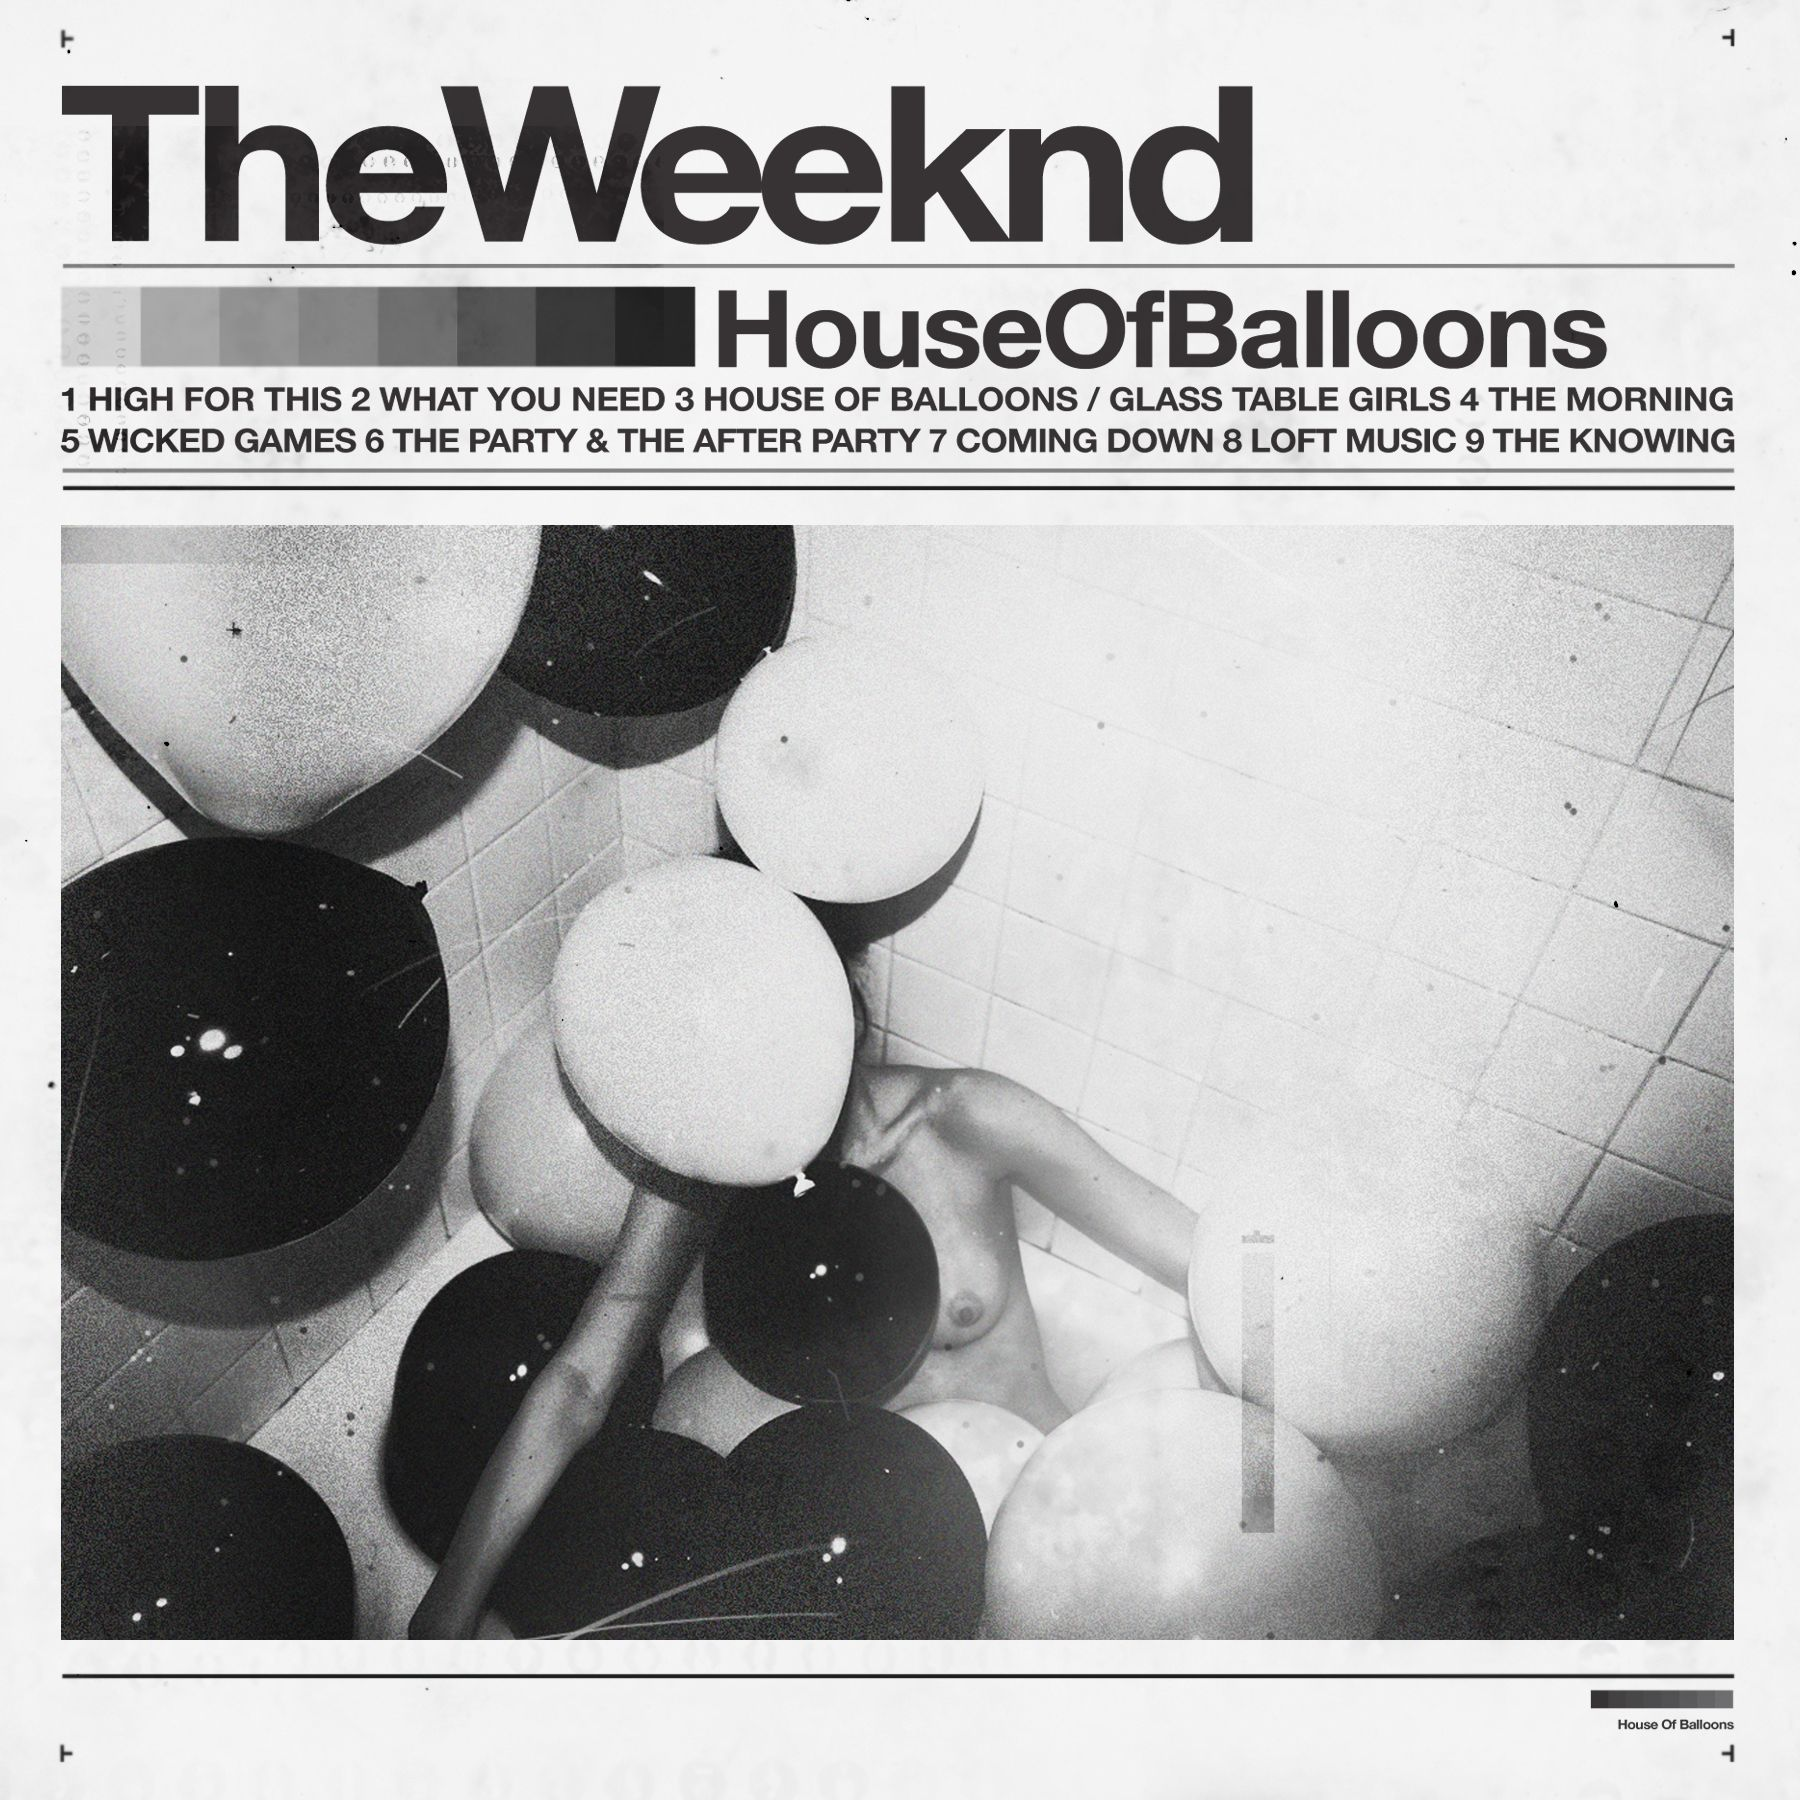 Download the weeknd house of balloons torrent kickass torrents download the weeknd house of balloons torrent kickass torrents malvernweather Gallery